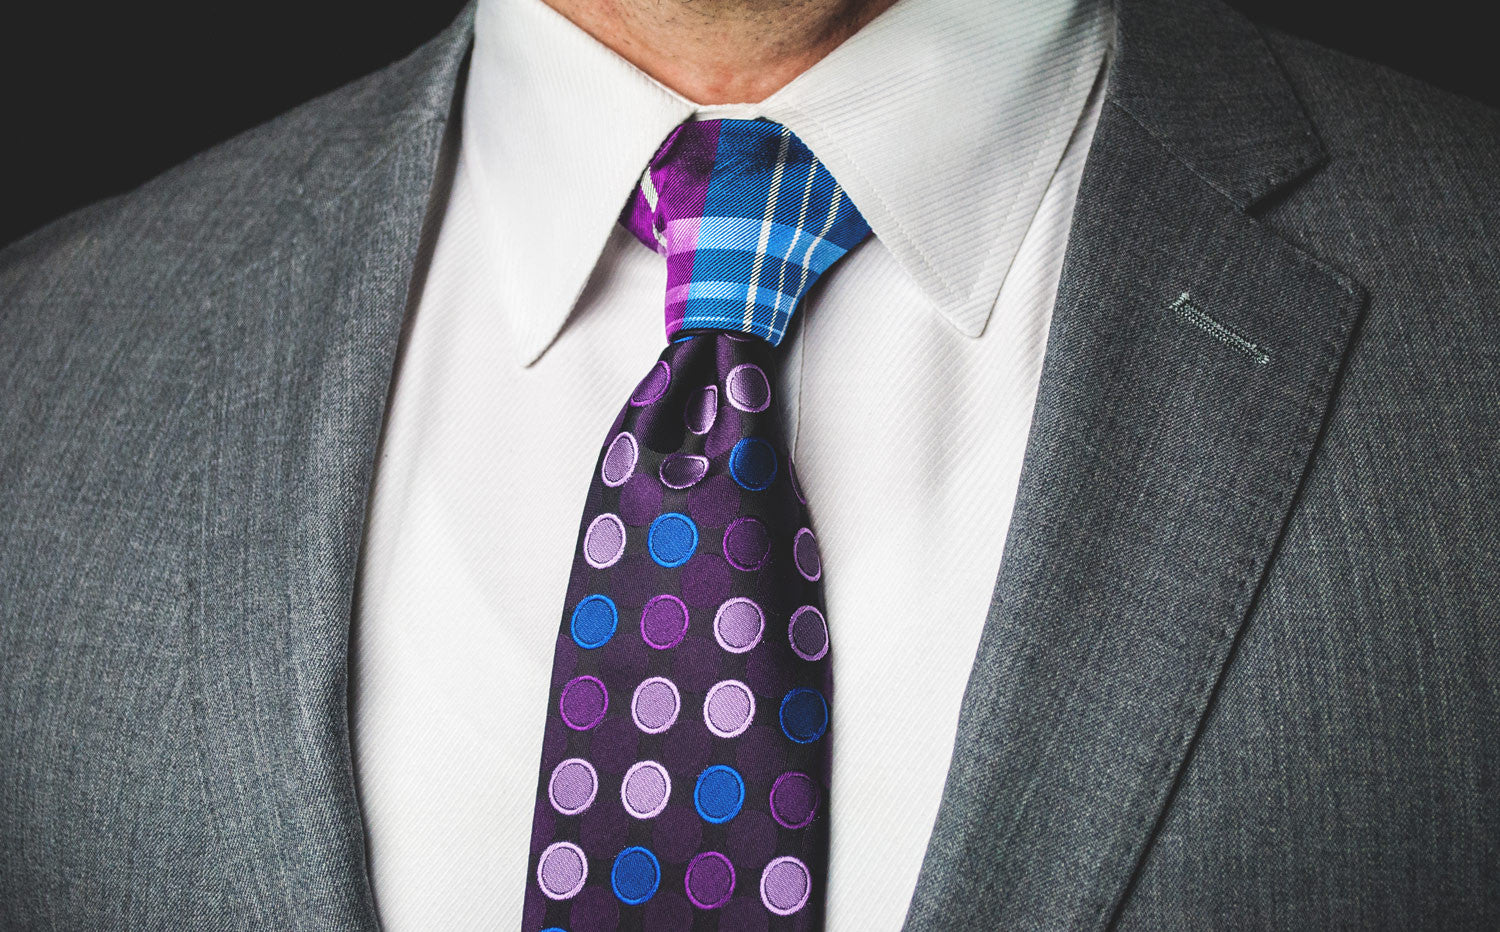 The Blue & Purple Plaid Proper Knot™